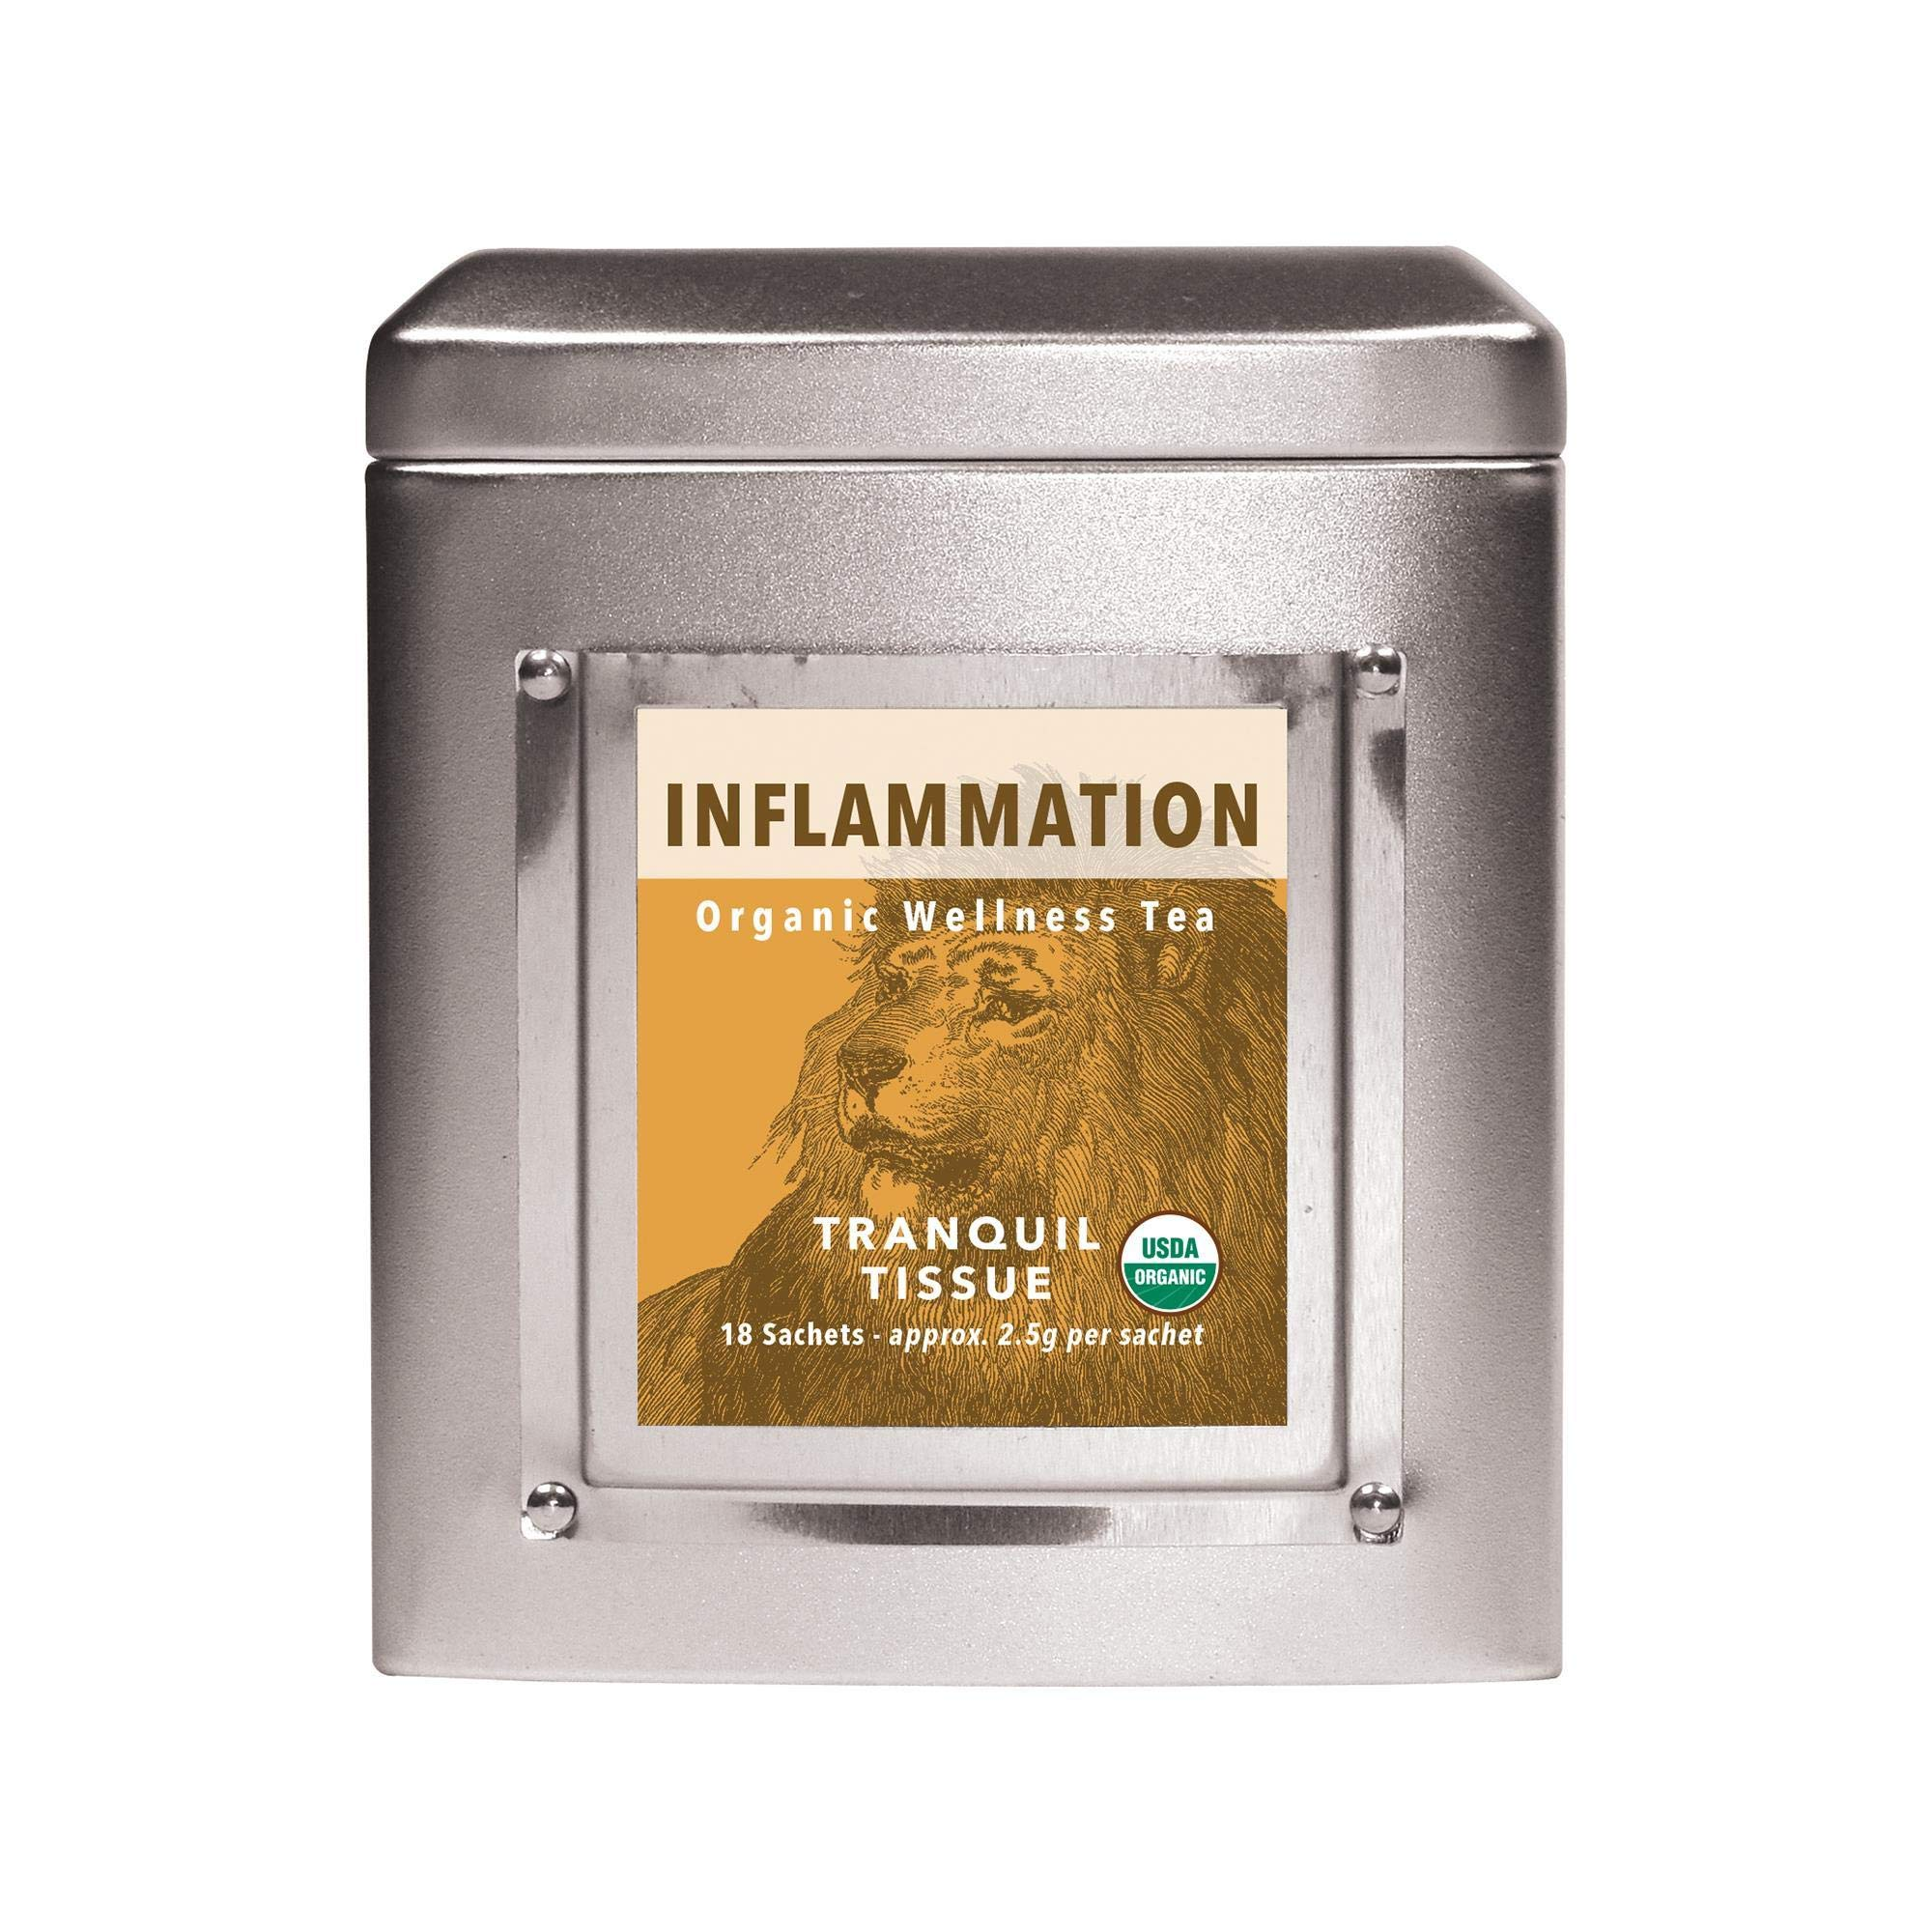 White Lion Inflammation (Tranquil Tissue) Wellness Tea   100% USDA Certified Organic   Antioxidant-Rich in Turmeric, Black Pepper, & Cacao Nibs   18 Count Tin